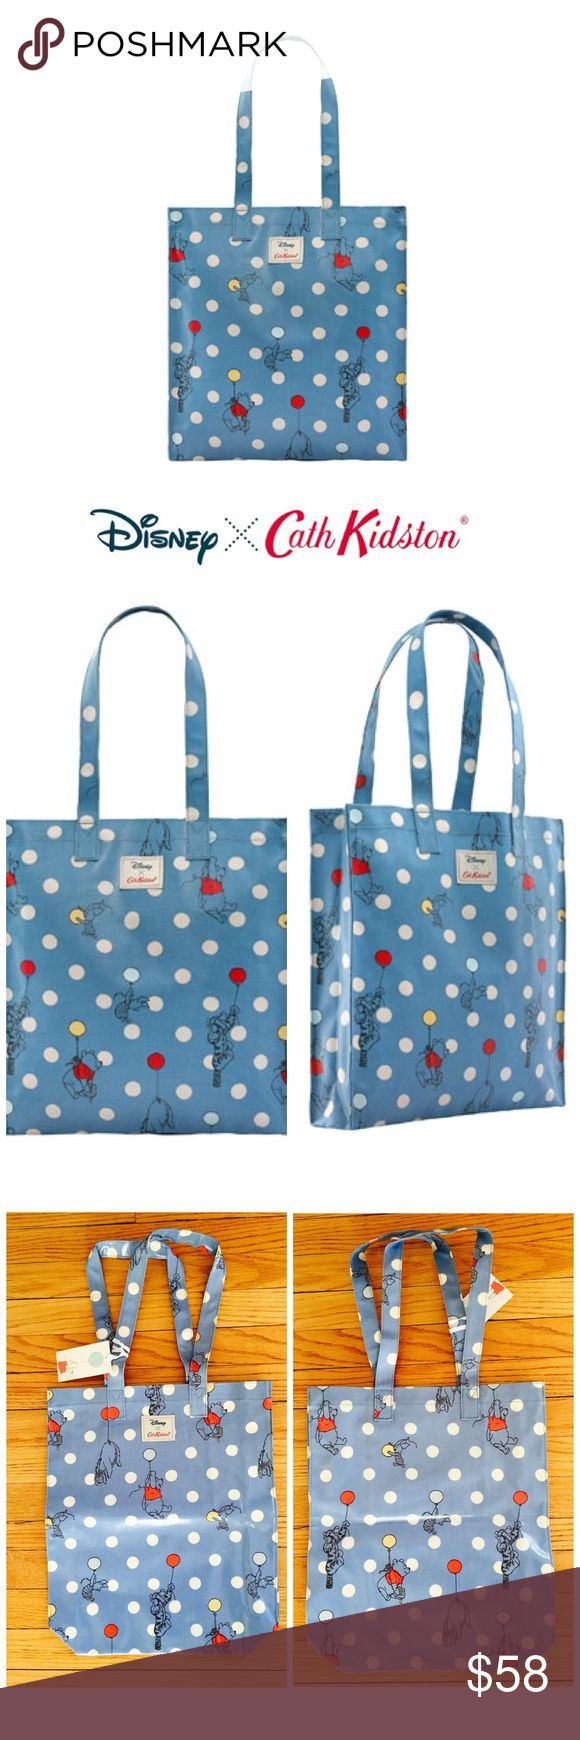 Rare Cath Kidston Disney Winnie the Pooh Spot Bag Brand new, limited edition Cath Kidston x Disney Winnie the Pooh Spot Bag.   The perfect pick-me-up from our limited edition Winnie-the-Pooh x Cath Kidston collection, this over-the-shoulder book bag is made from durable oilcloth printed with Pooh and the gang plus our classic spots and has an internal pocket for essentials. Limited edition. Completely sold out online and in stores.   1 Internal open pocket Over-the-shoulder handles Shiny…